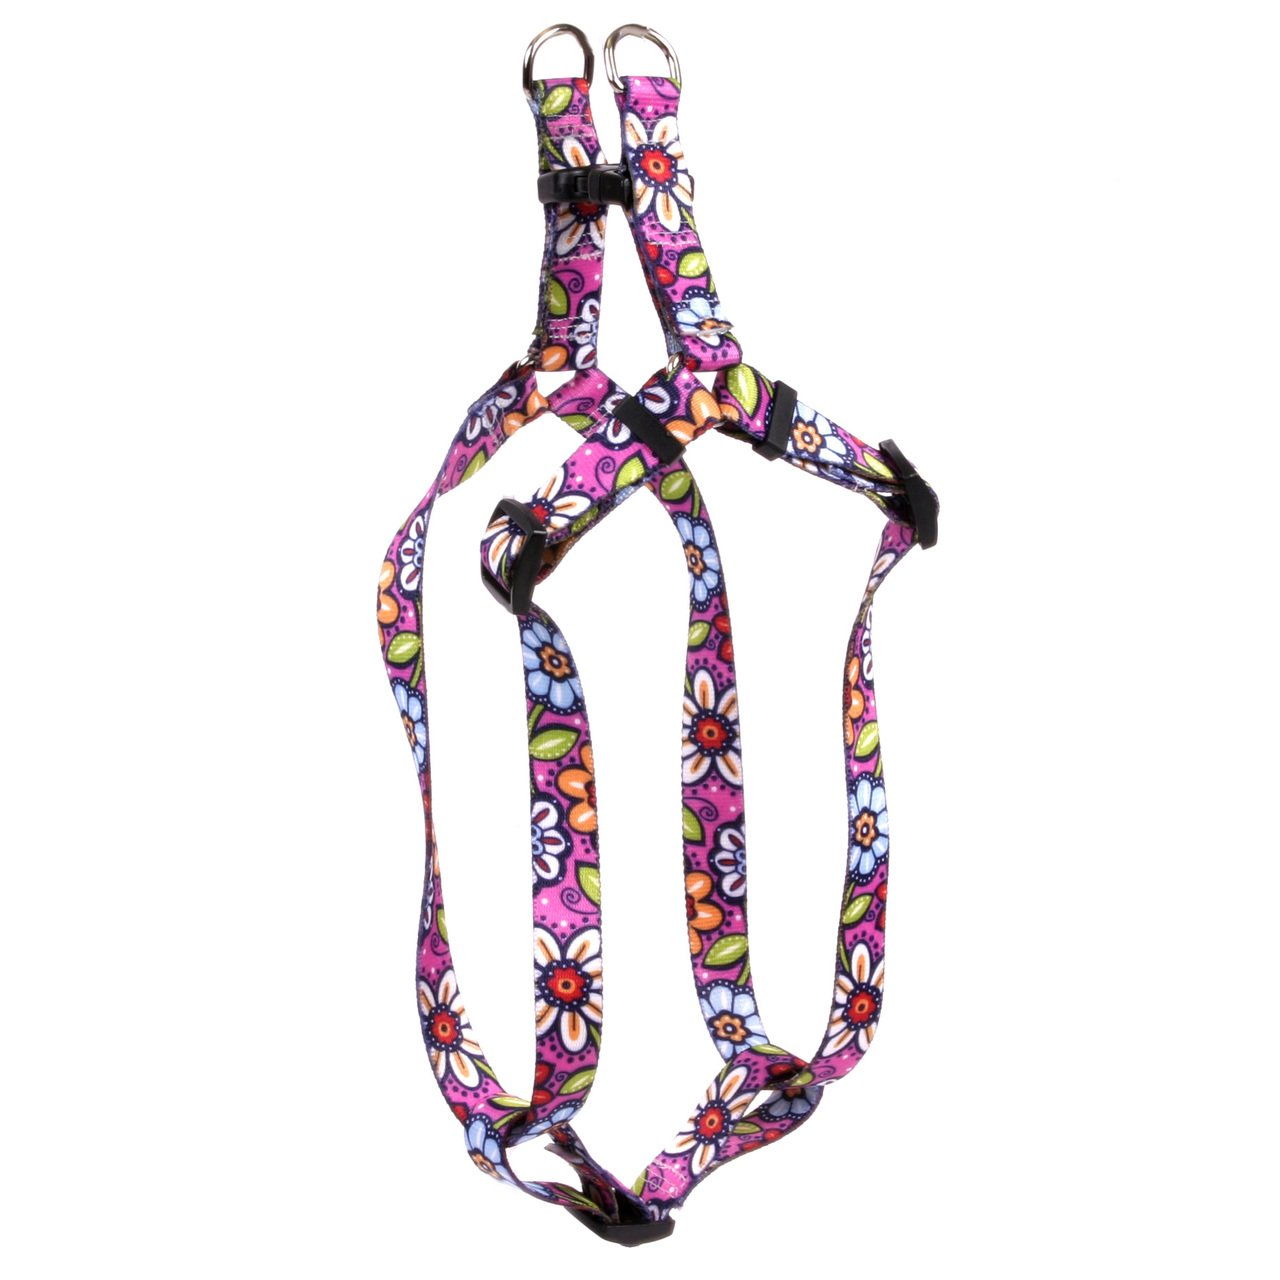 Yellow Dog Design Standard Step-in Harness, Pink Garden, Small 9'' - 15'' by Yellow Dog Design